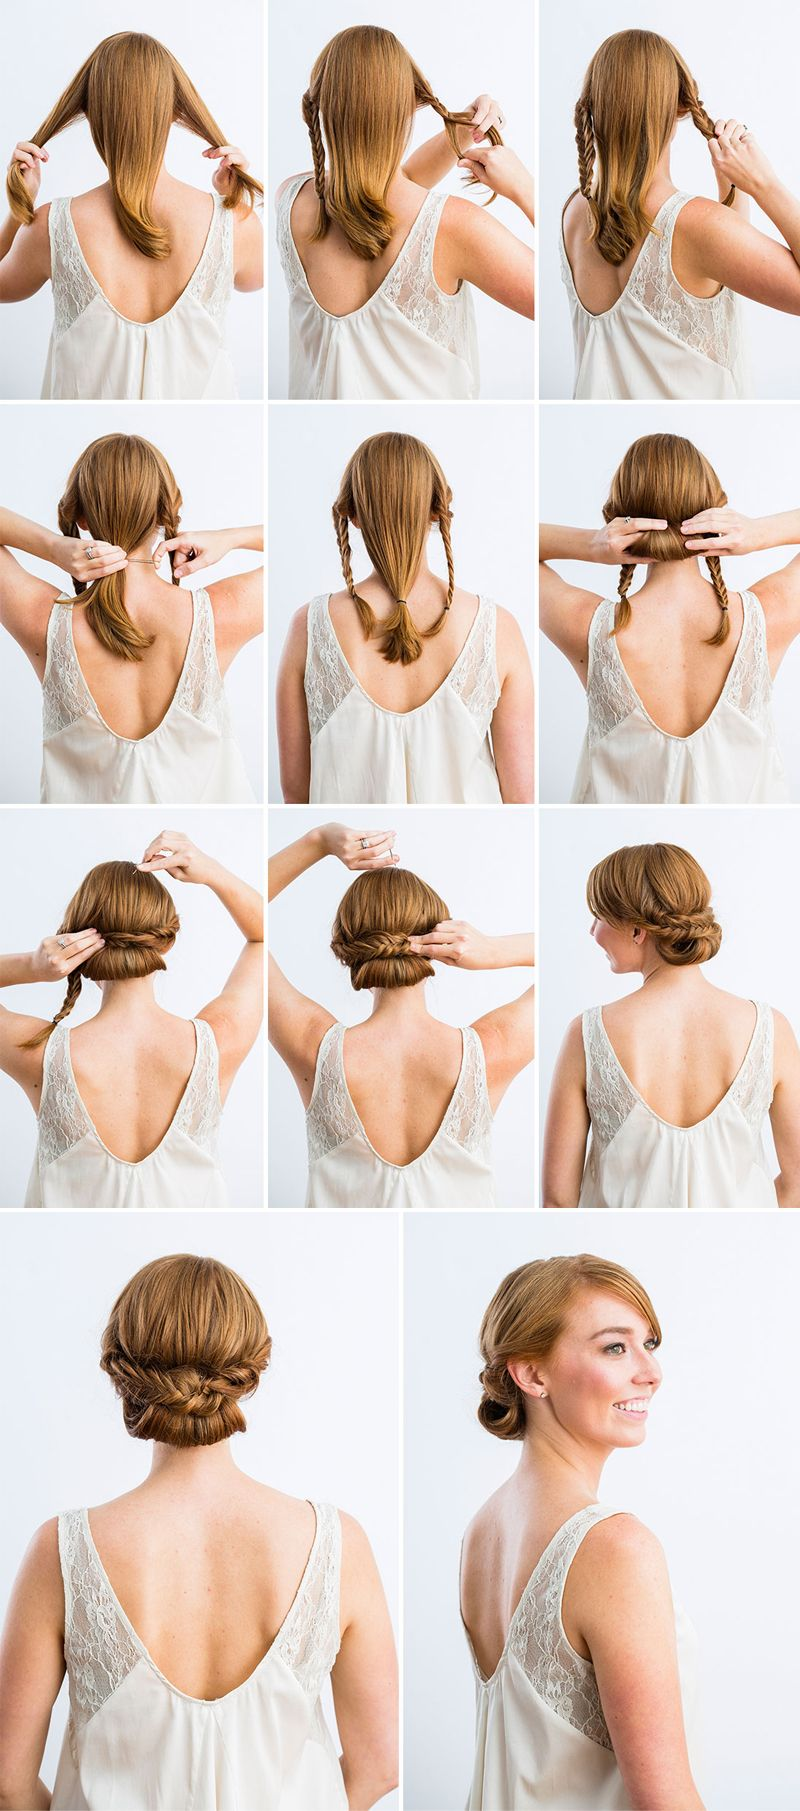 DIY HAIR TUTORIAL: BRAIDED WEDDING HAIR FOR BEGINNERS